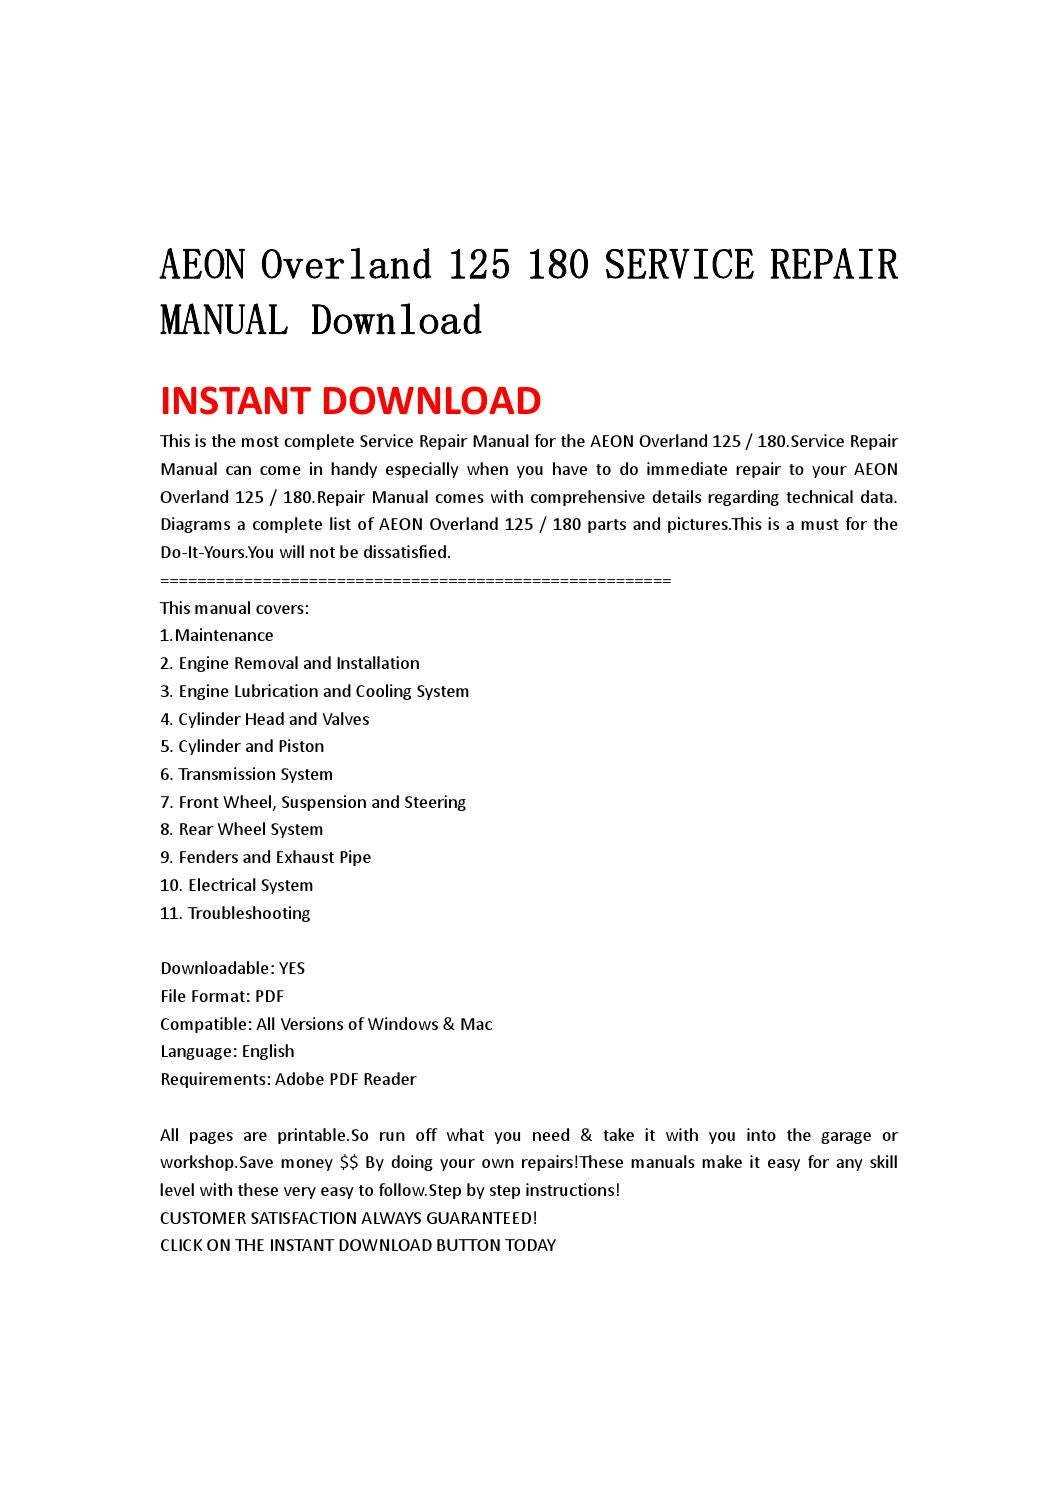 Aeon Overland 180 Manual Smart Remote Key Fob 4b For 20062008 Infiniti M35 M45 Cwtwbu618 Array 125 Service Repair Download By Jsefgsebh Rh Issuu Com